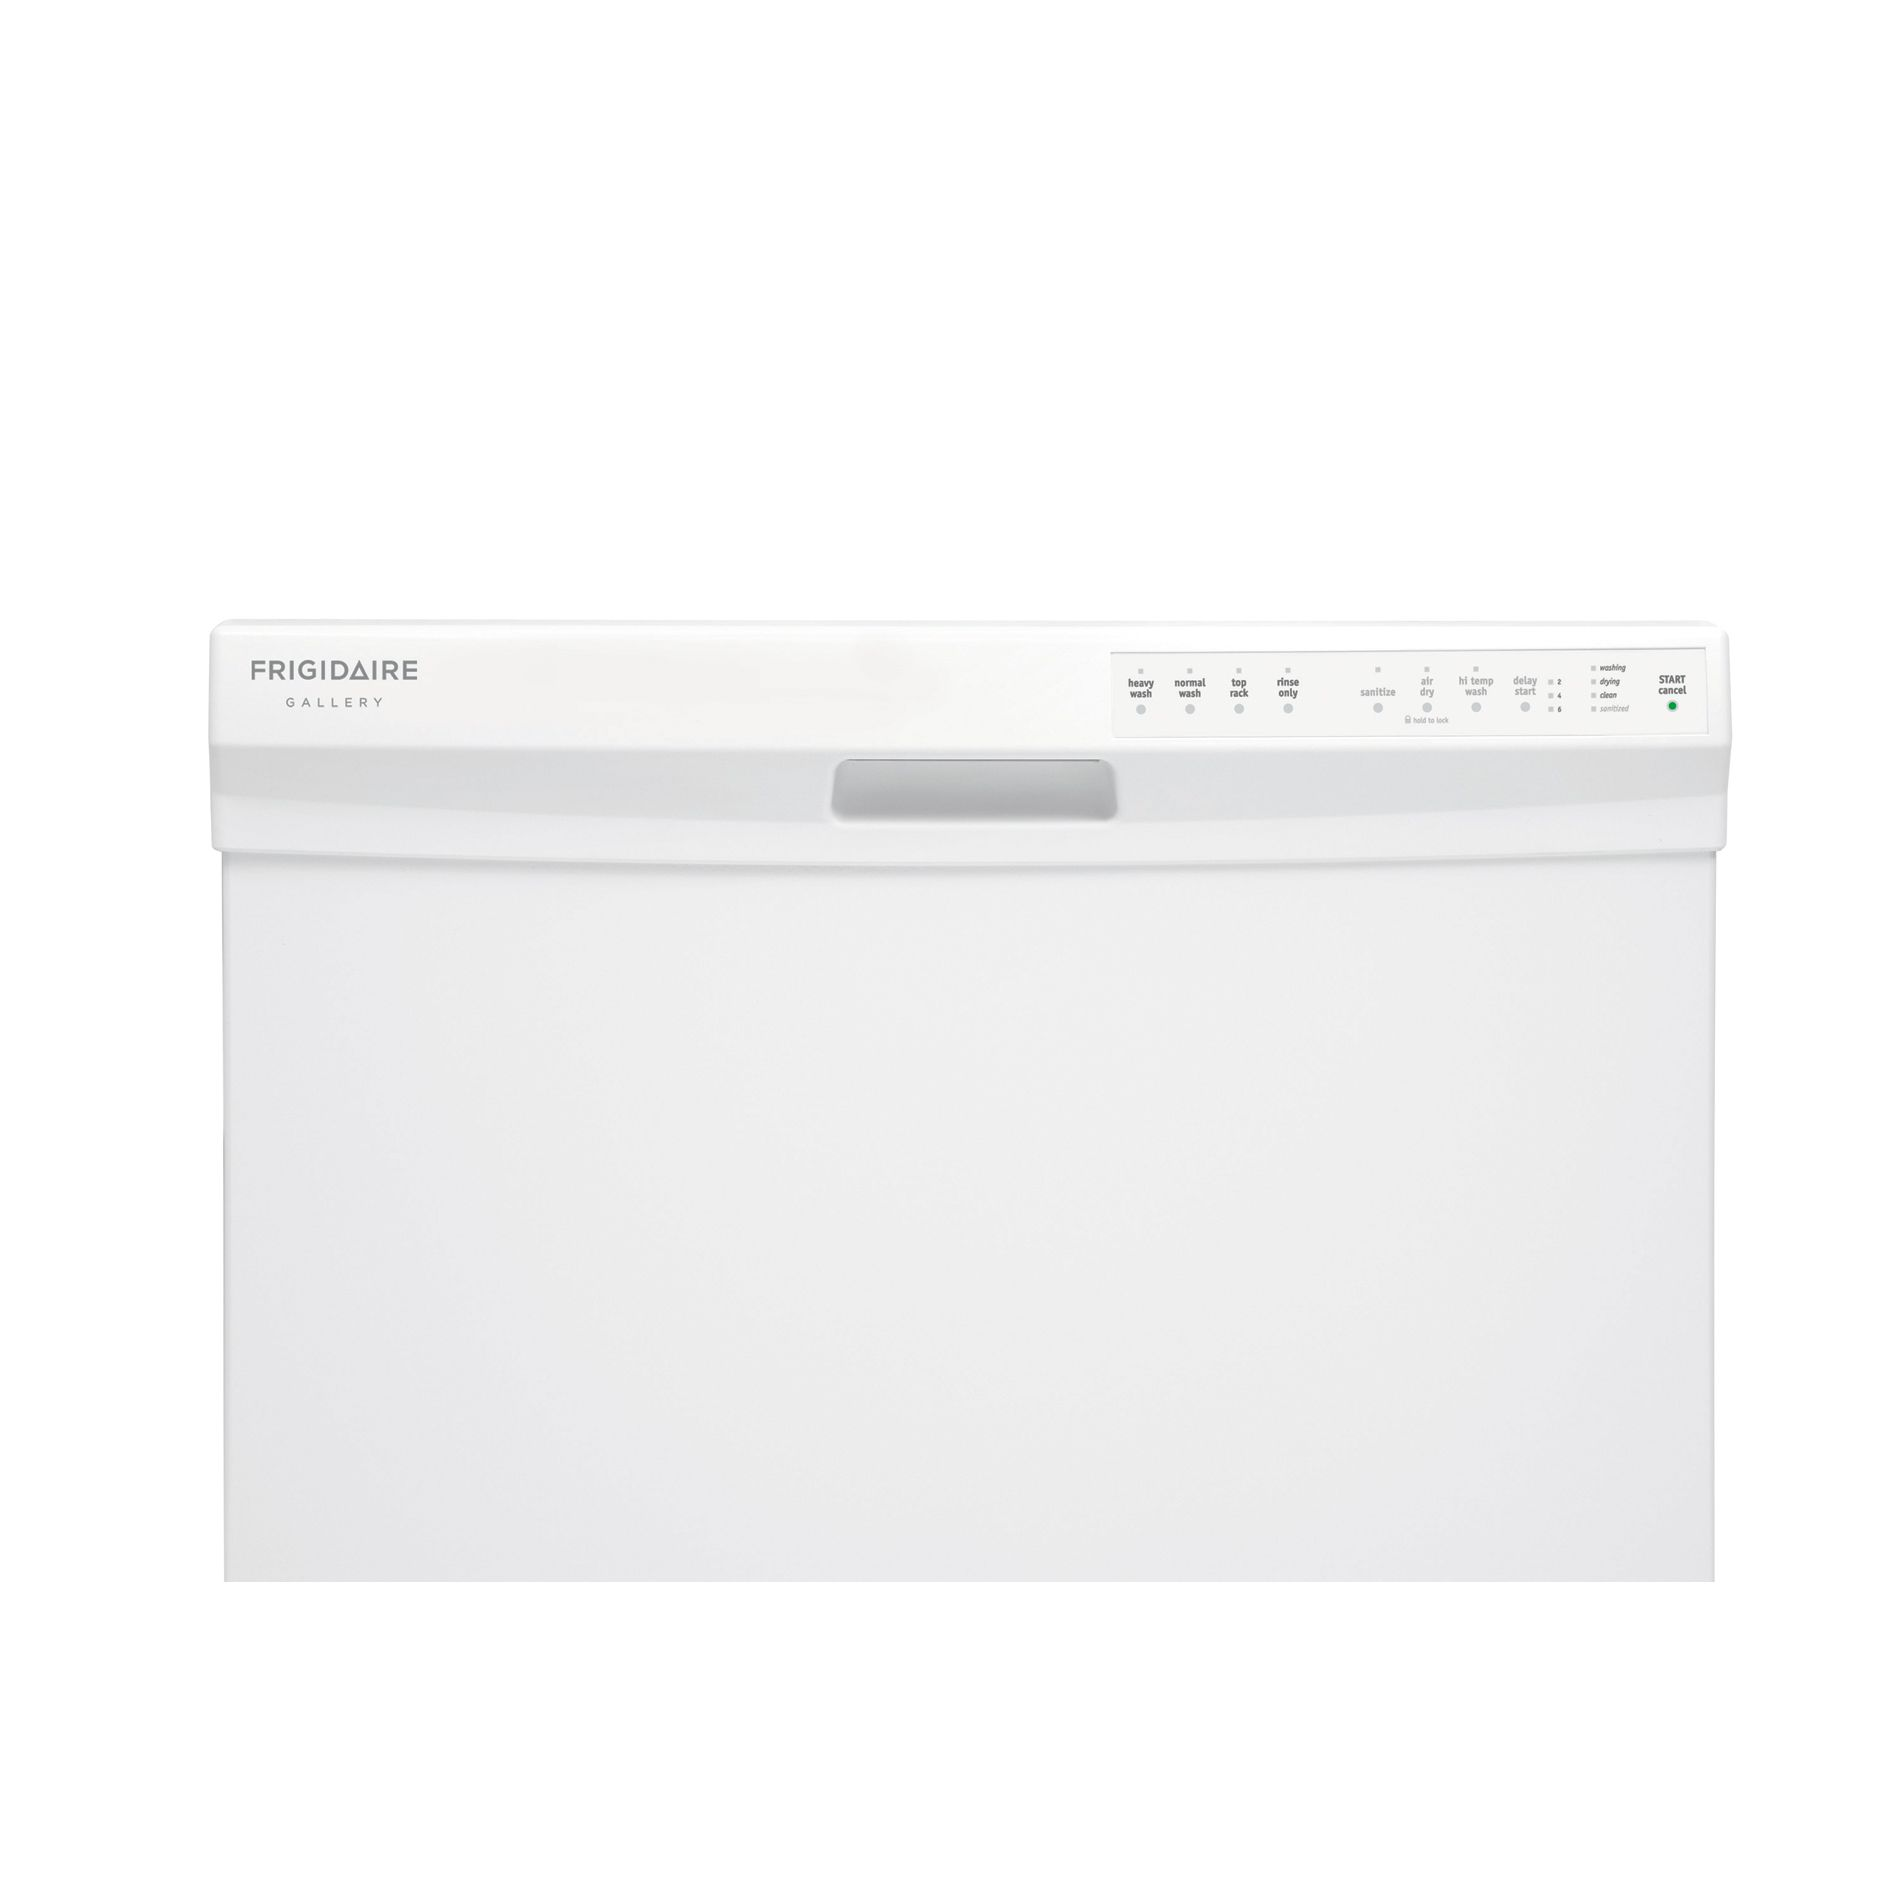 "Frigidaire 24"" Built-In Dishwasher - White"